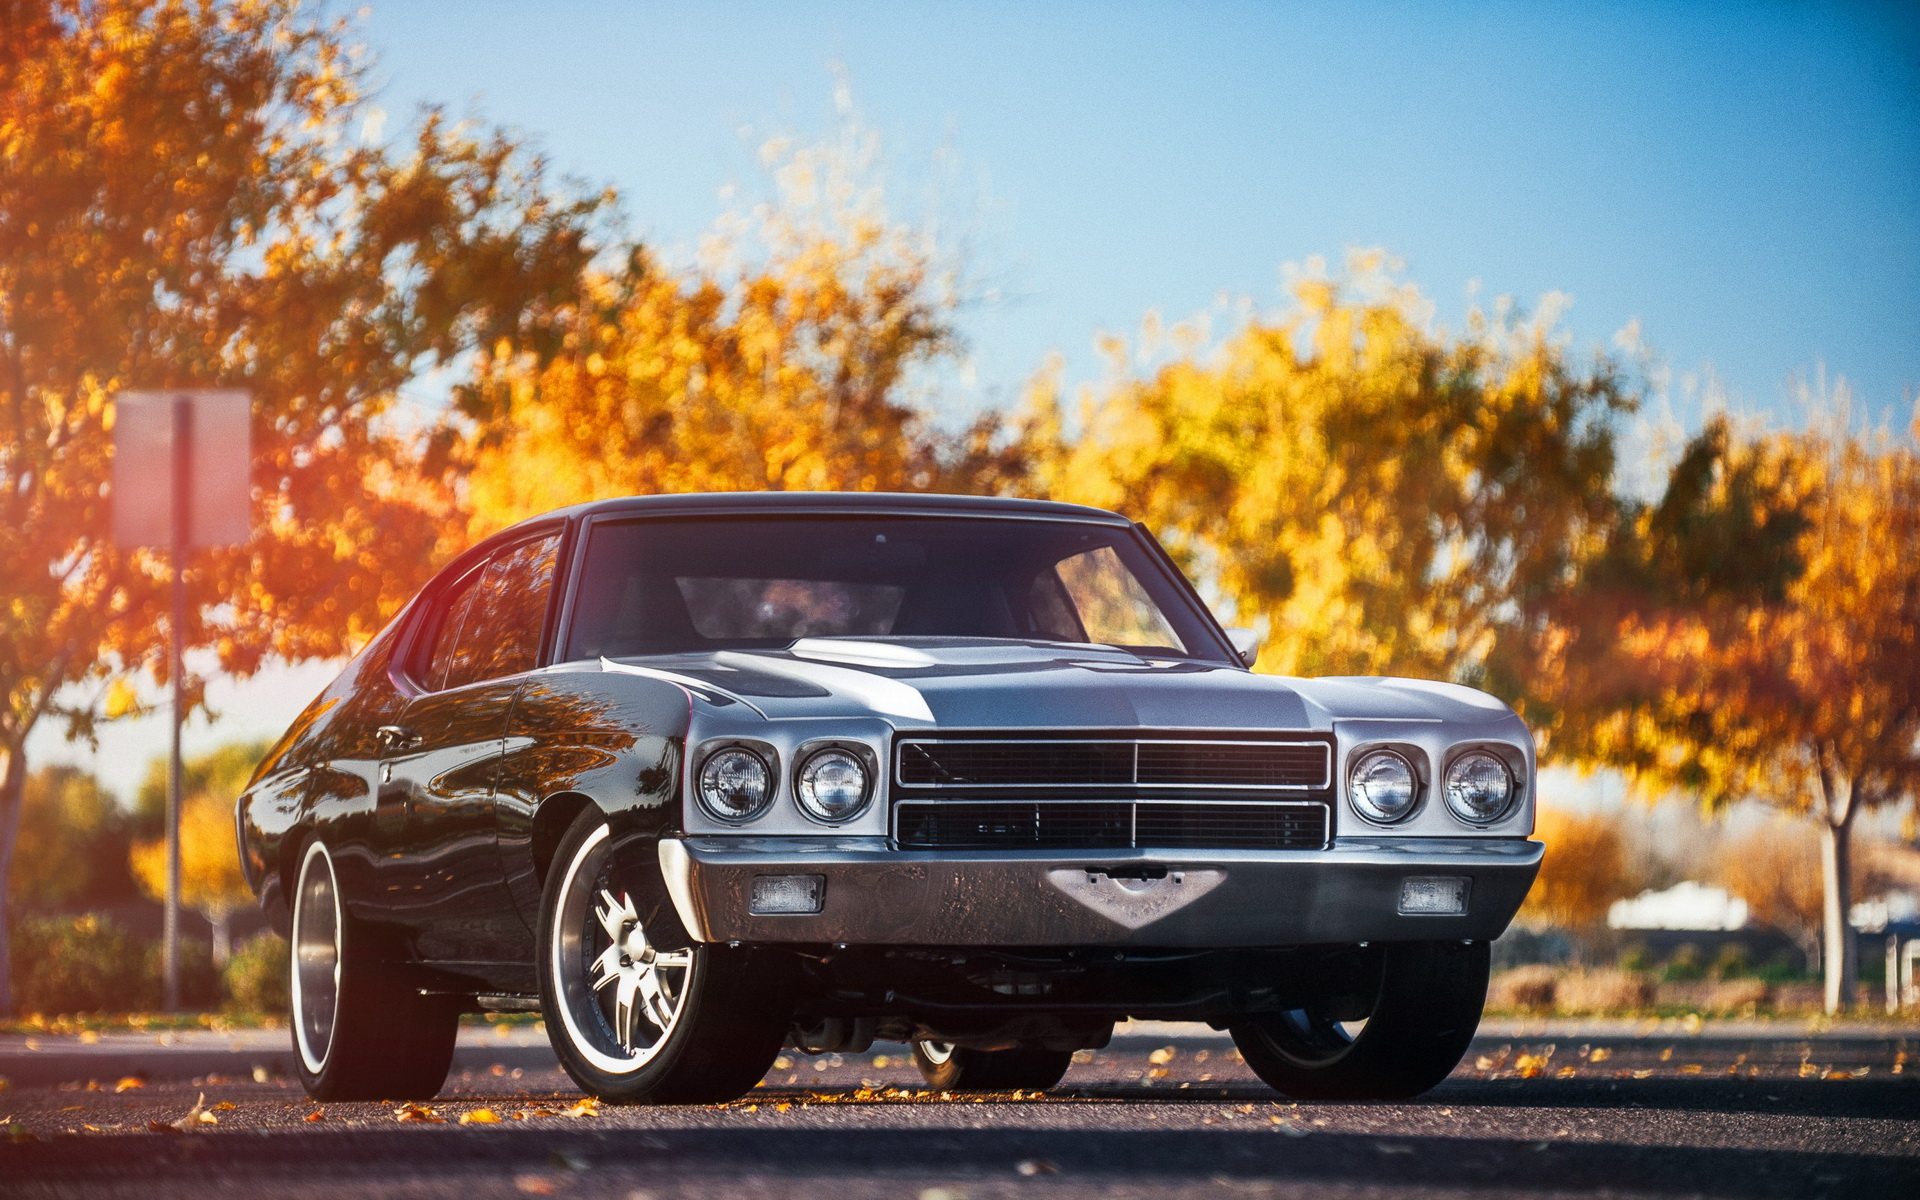 Chevrolet Chevelle HD Wallpaper